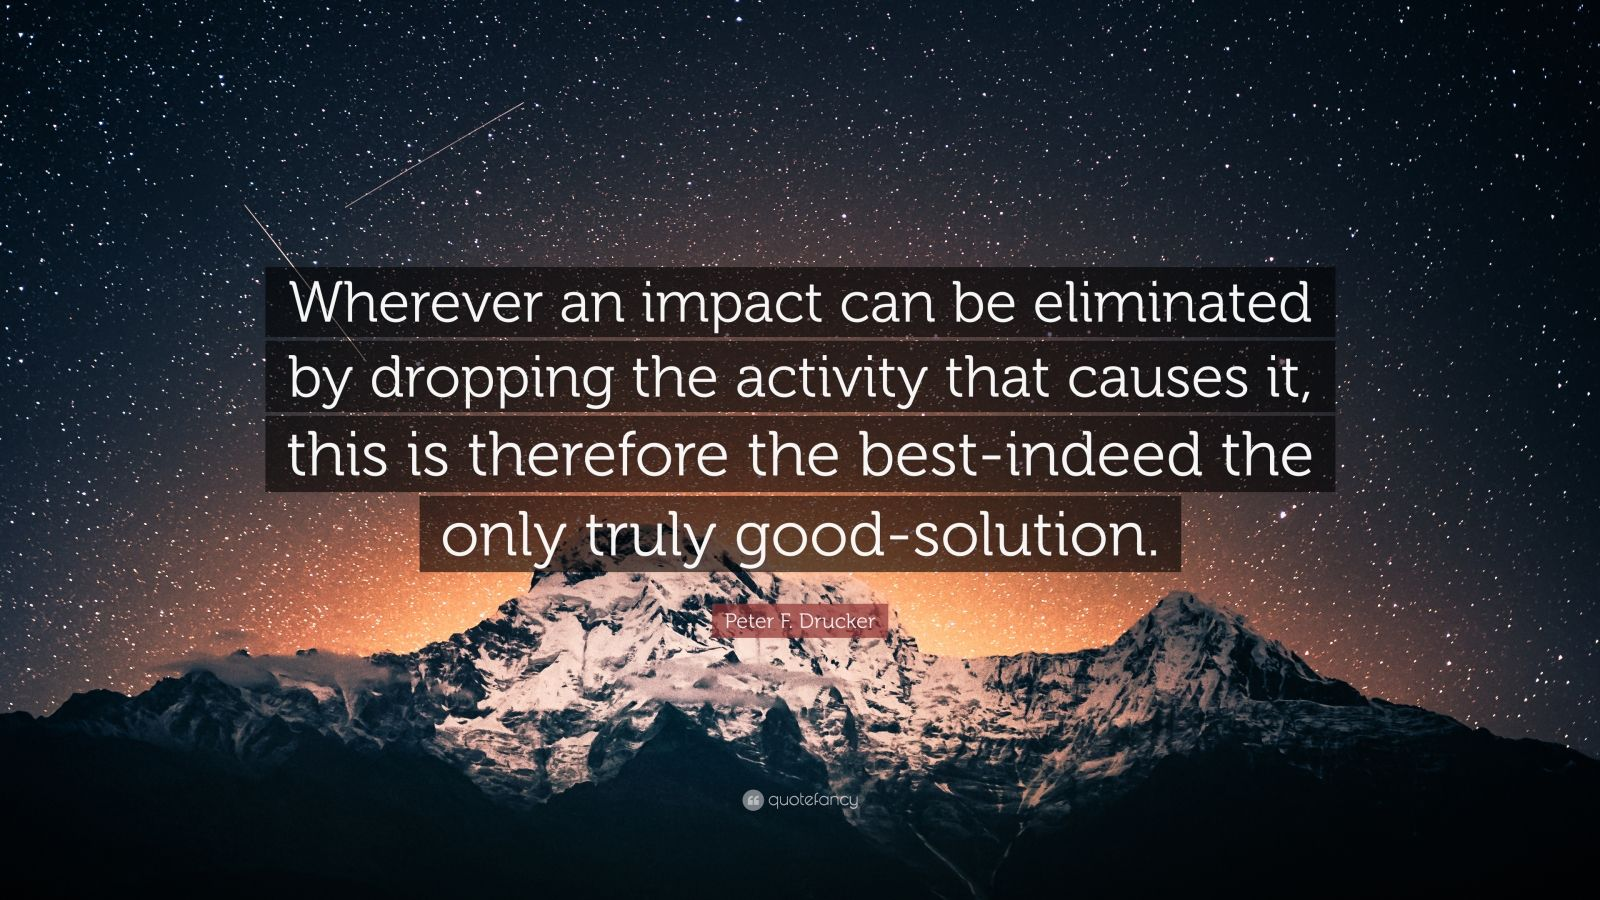 """Peter F. Drucker Quote: """"Wherever an impact can be eliminated by dropping the activity that causes it, this is therefore the best-indeed the only truly good-solution."""""""